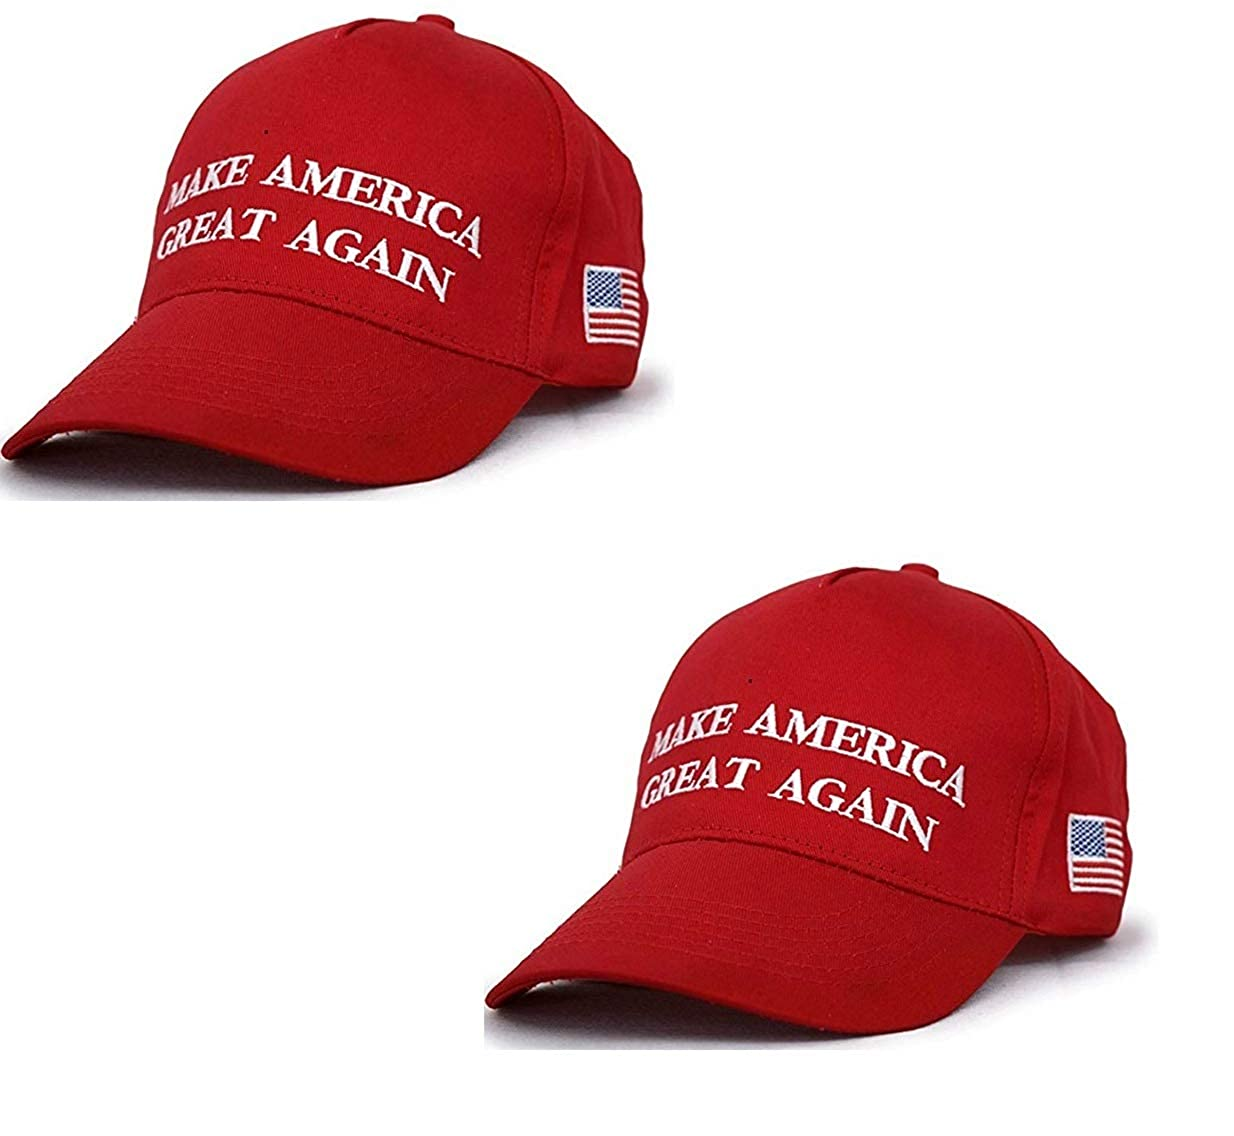 86e39140d37cc2 Amazon.com: Make America Great Again Hat Donald Trump USA MAGA Cap  Adjustable Baseball Hat: Clothing